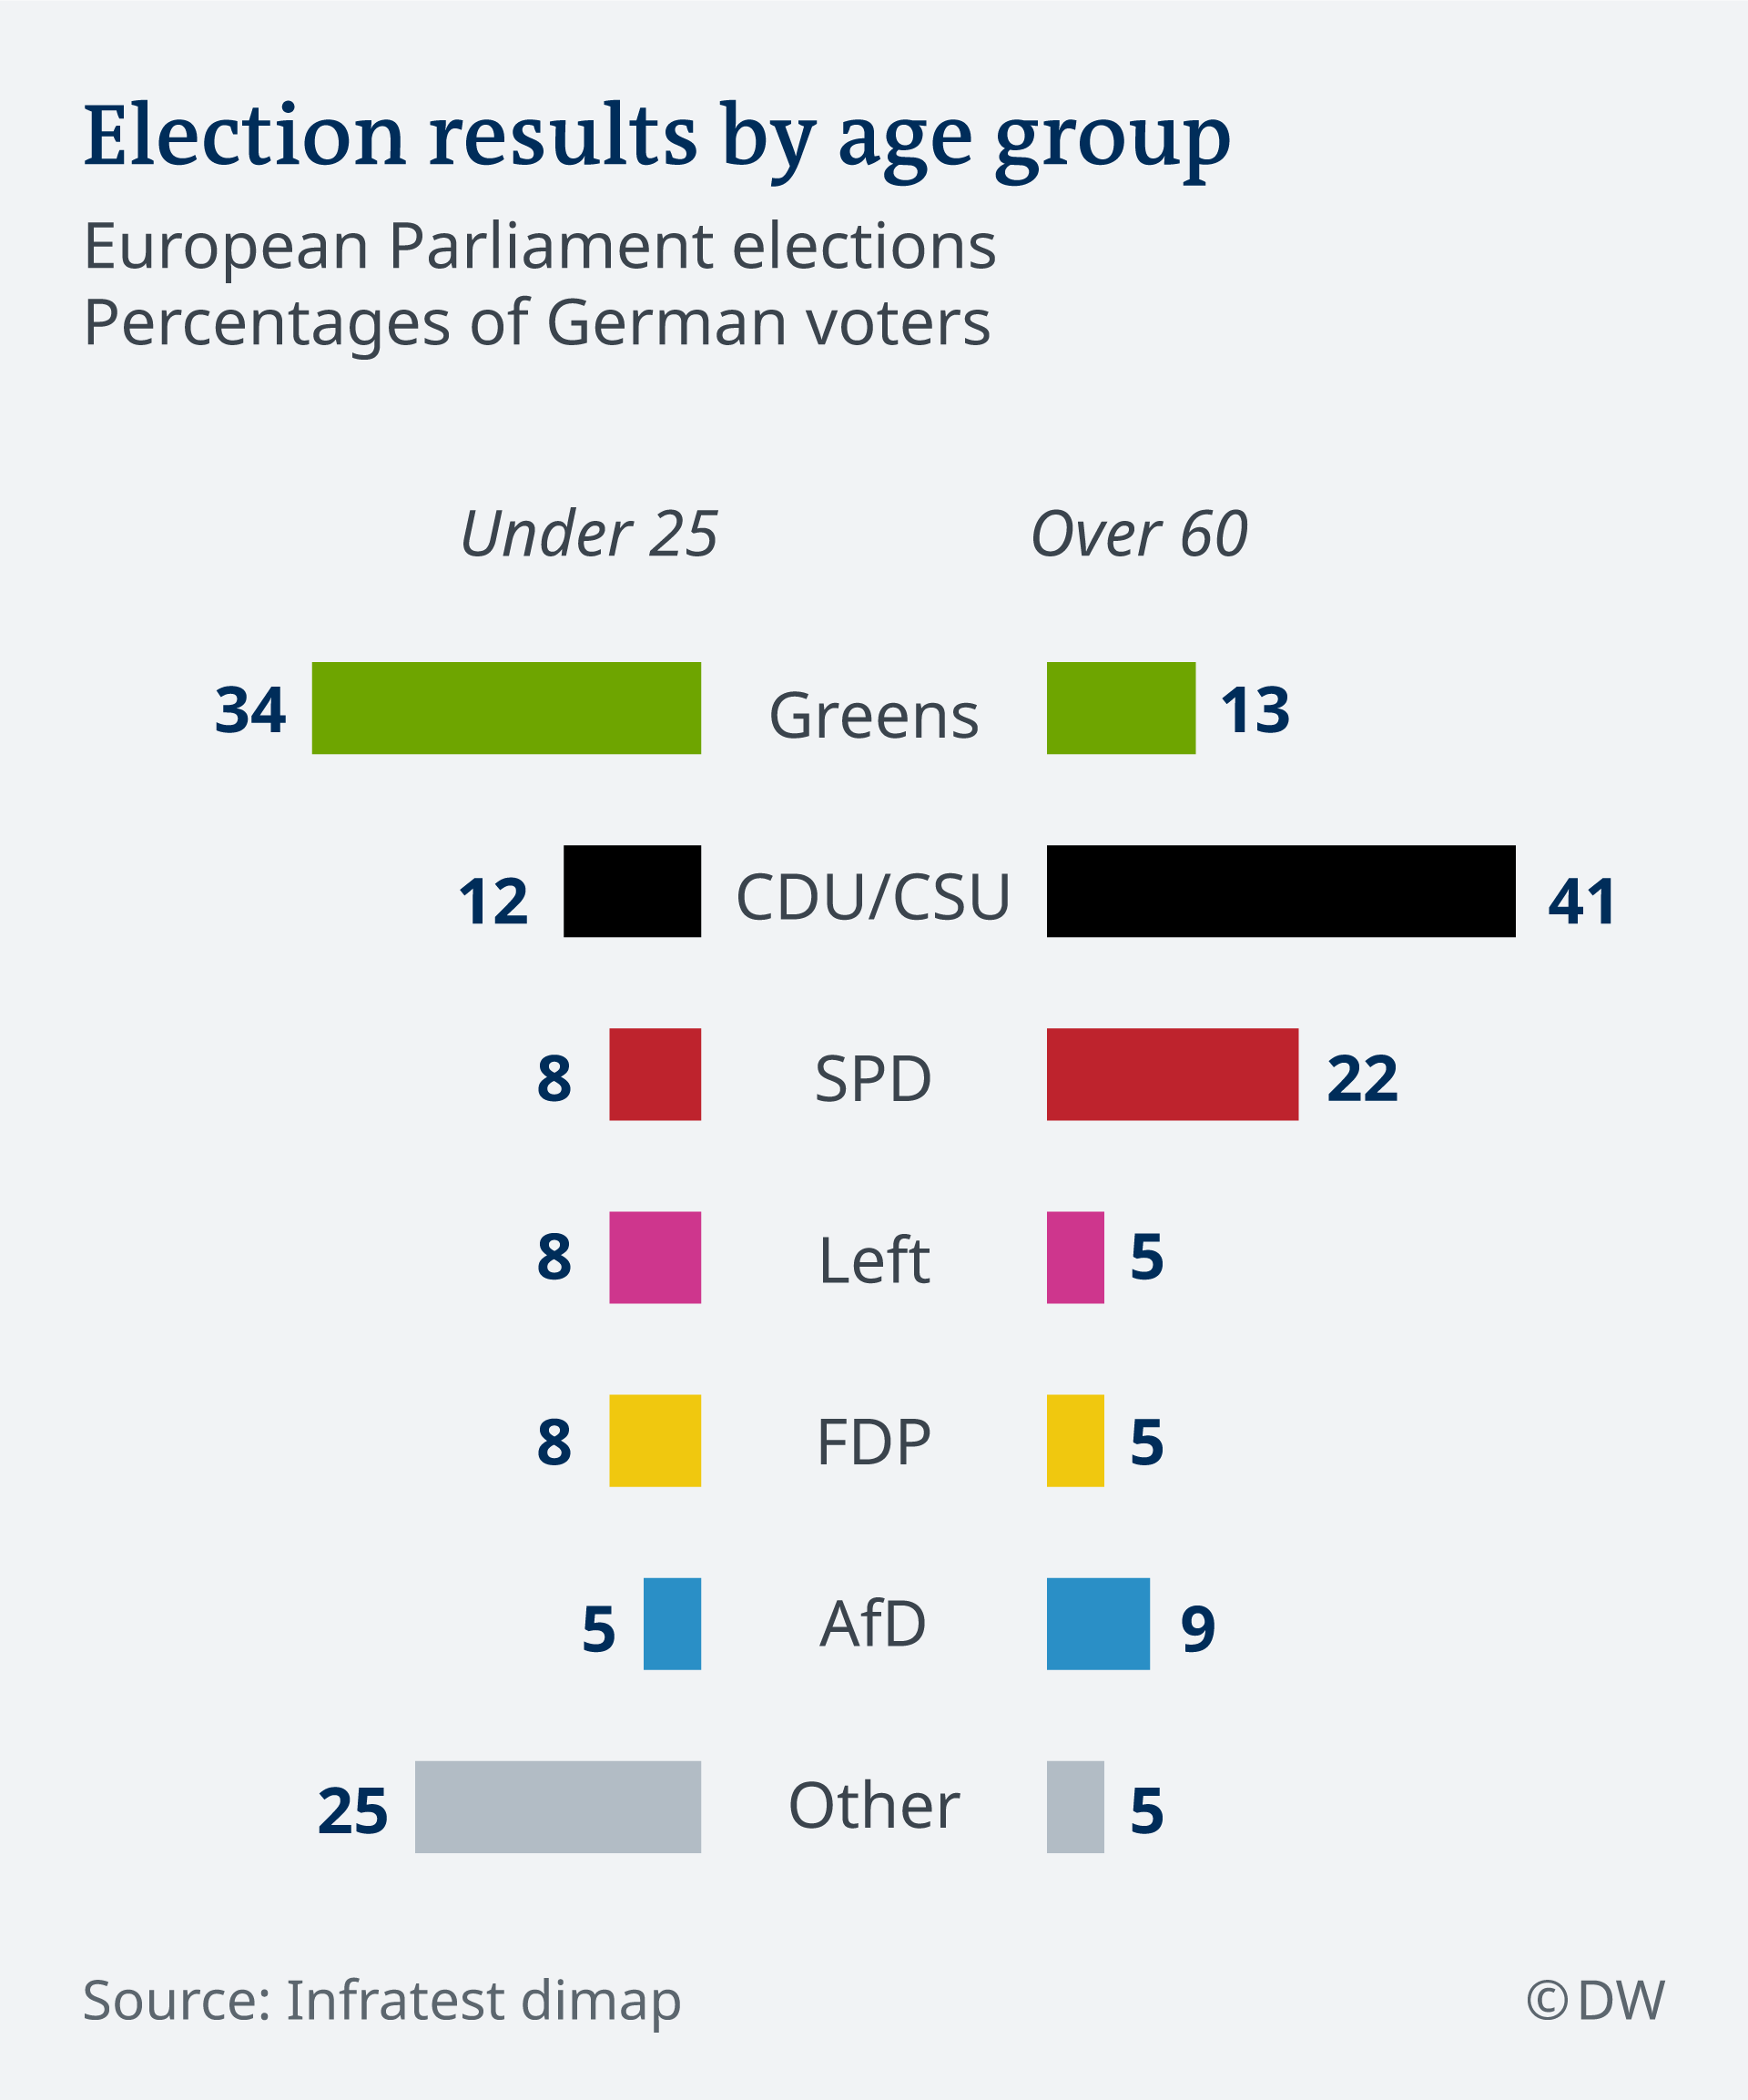 Electoral results according to age groups